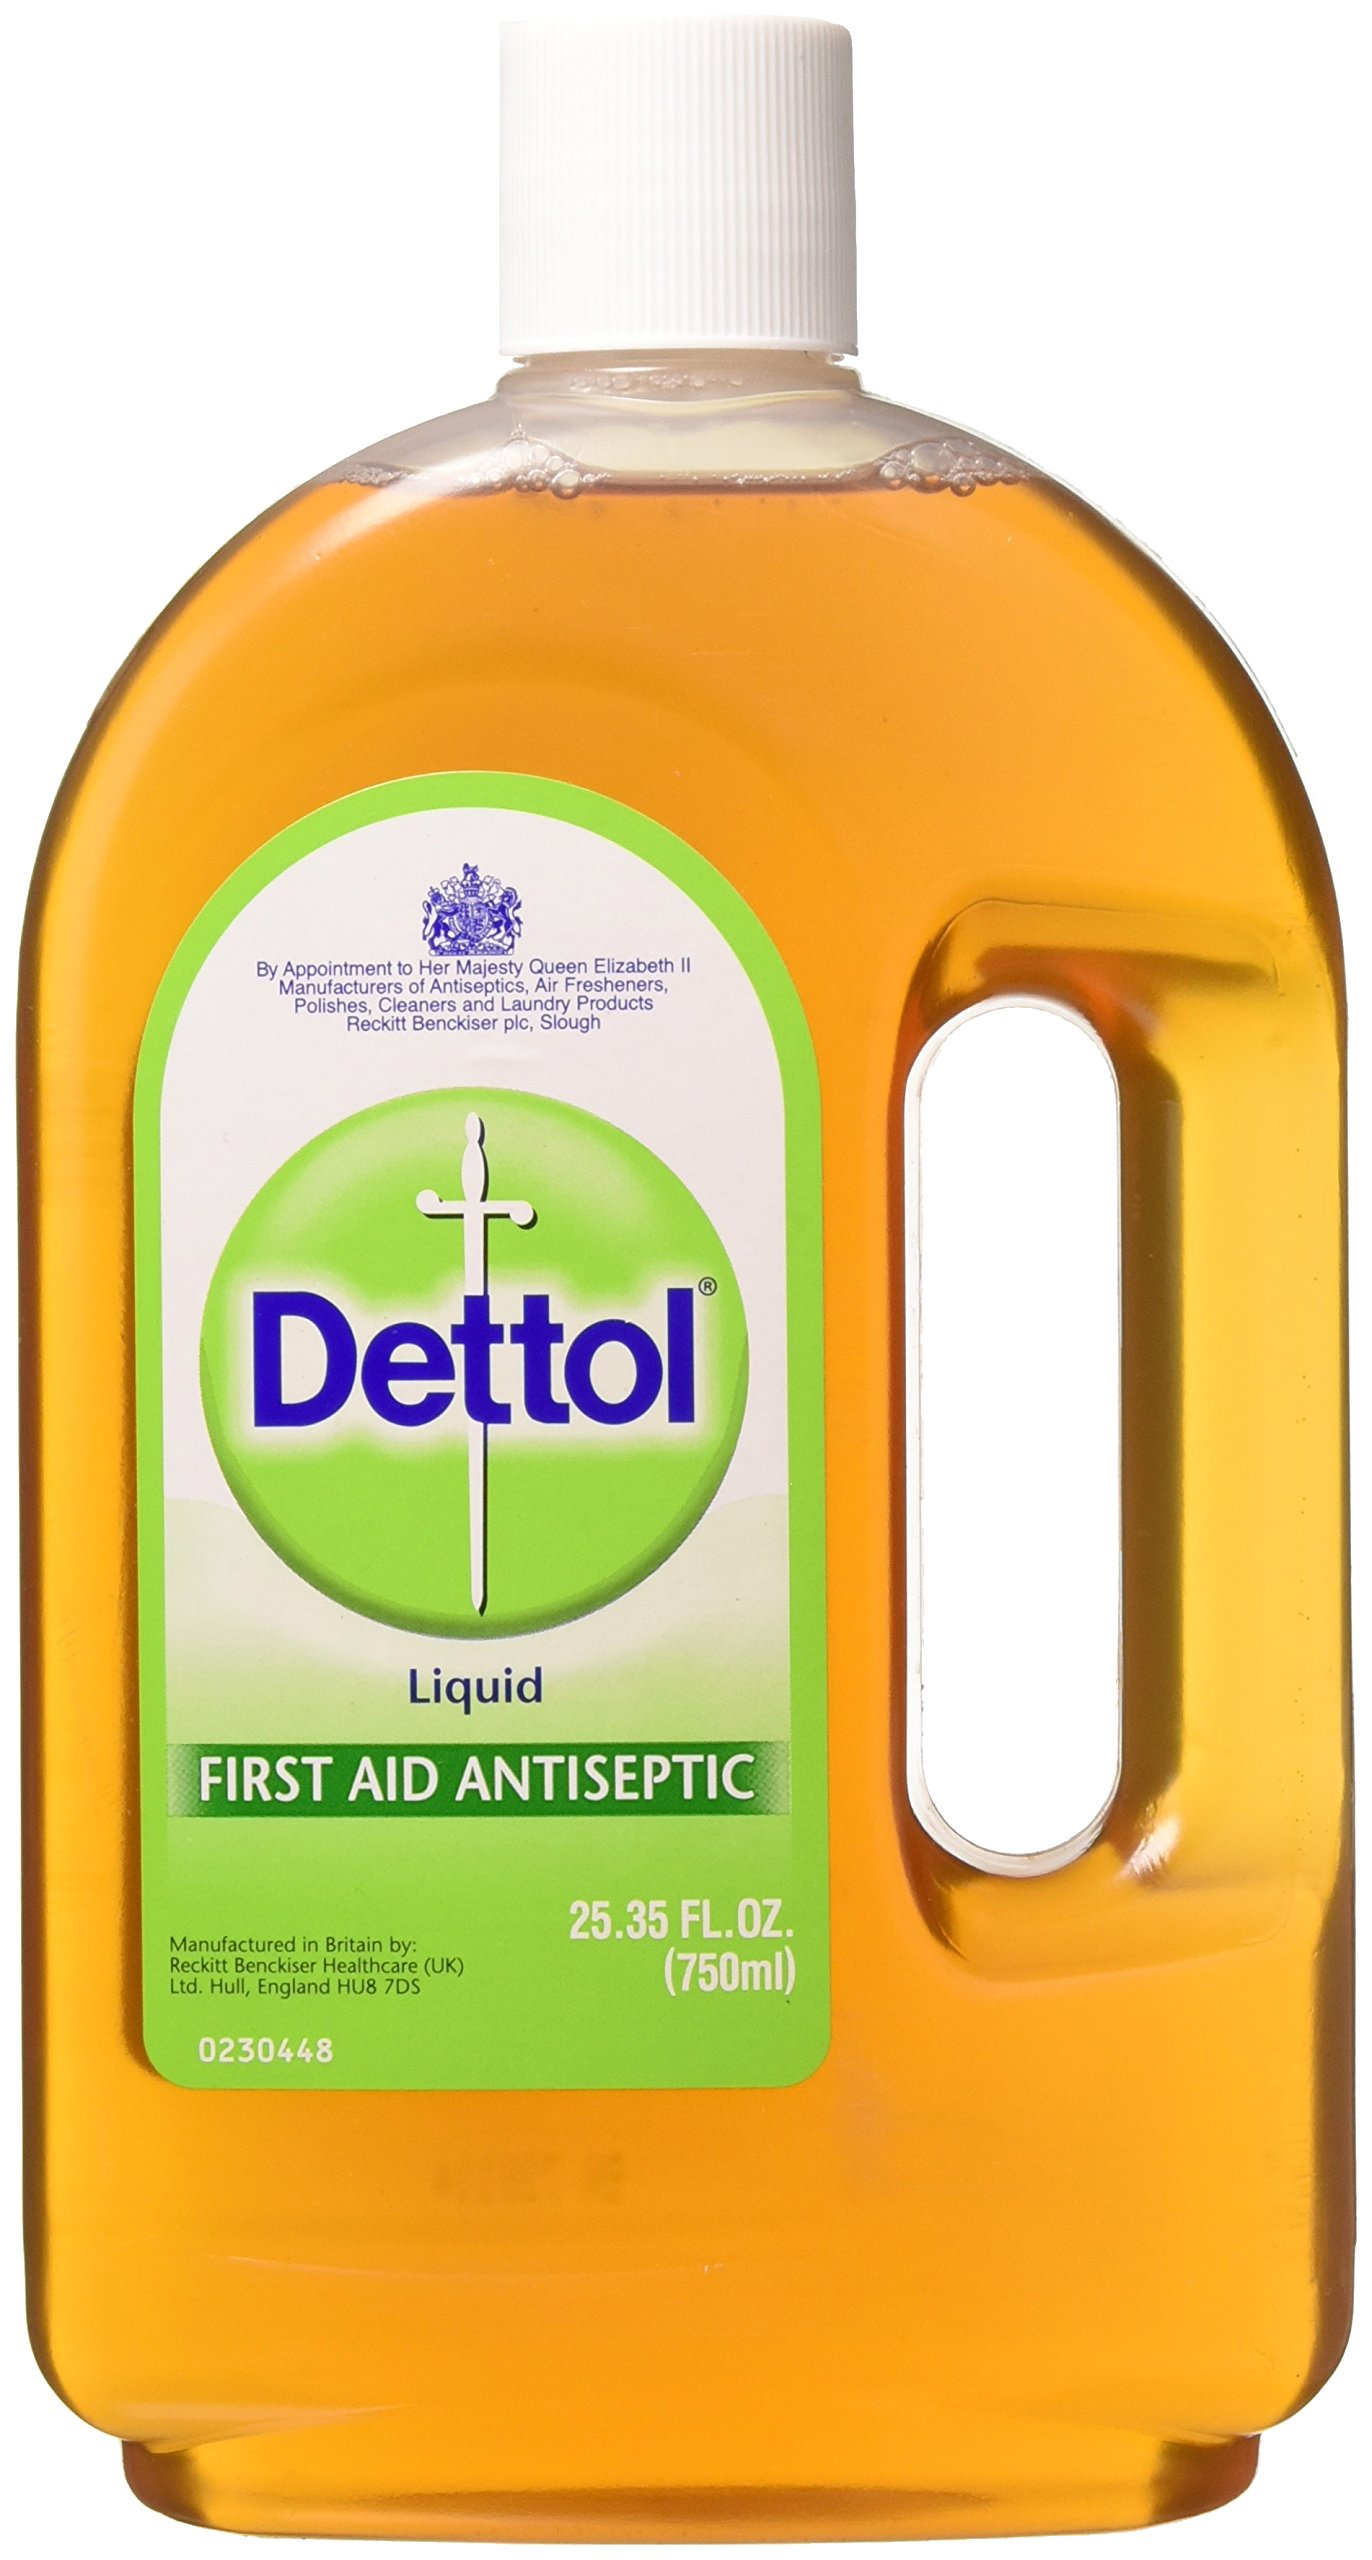 Dettol Topical Antiseptic Liquid 25.35 FL.OZ.(750ml) by Dettol